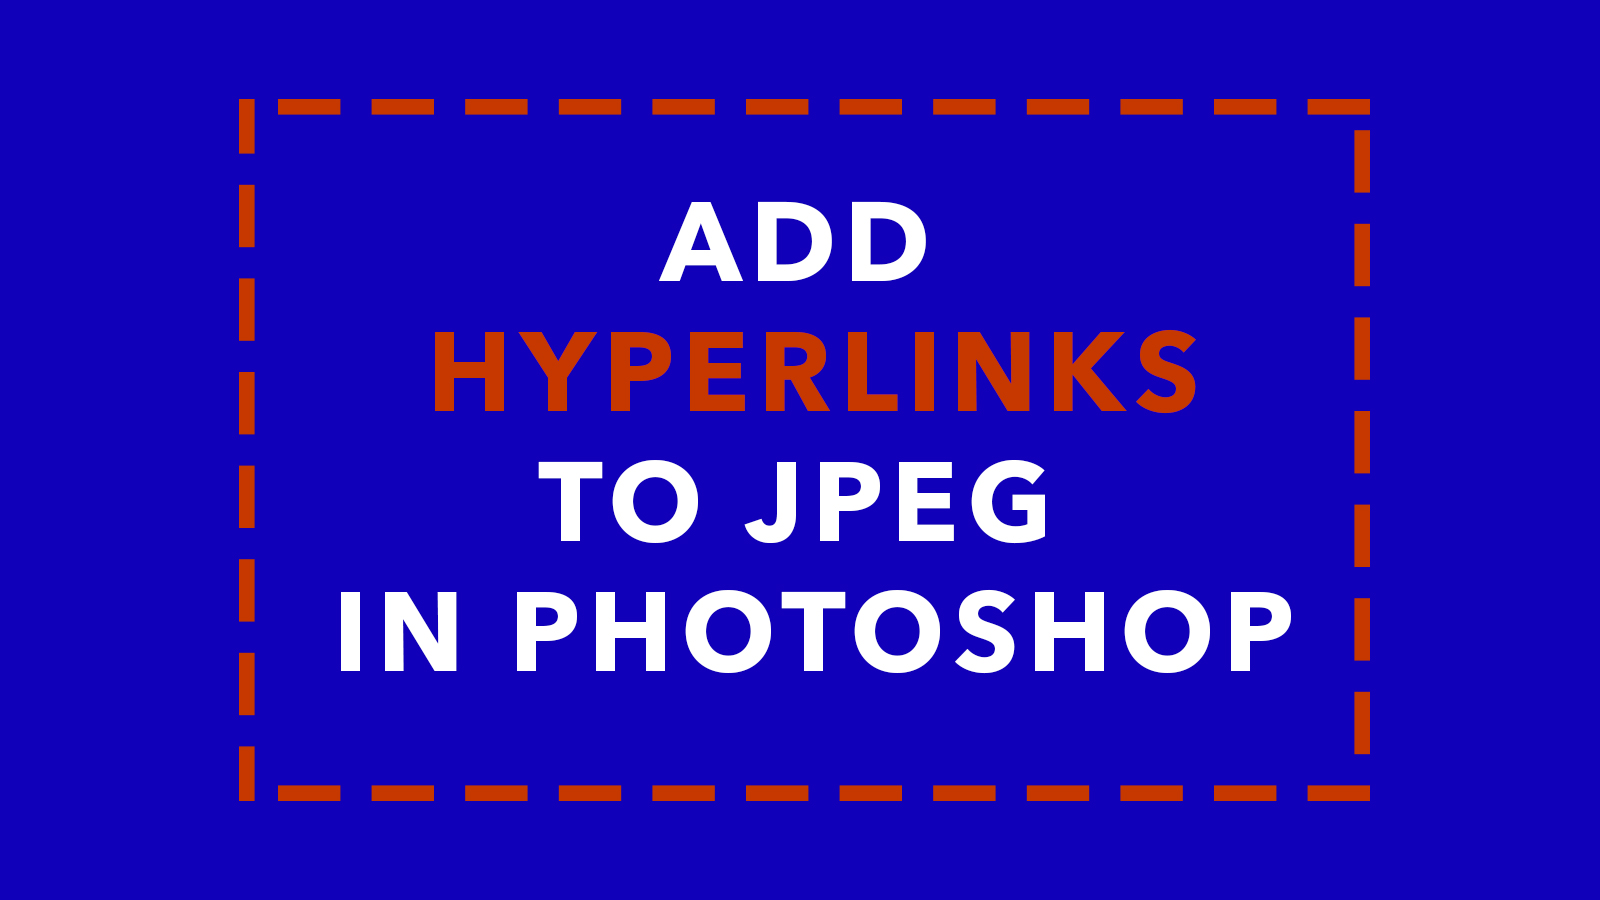 how to add hyperlinks to jpeg in photoshop